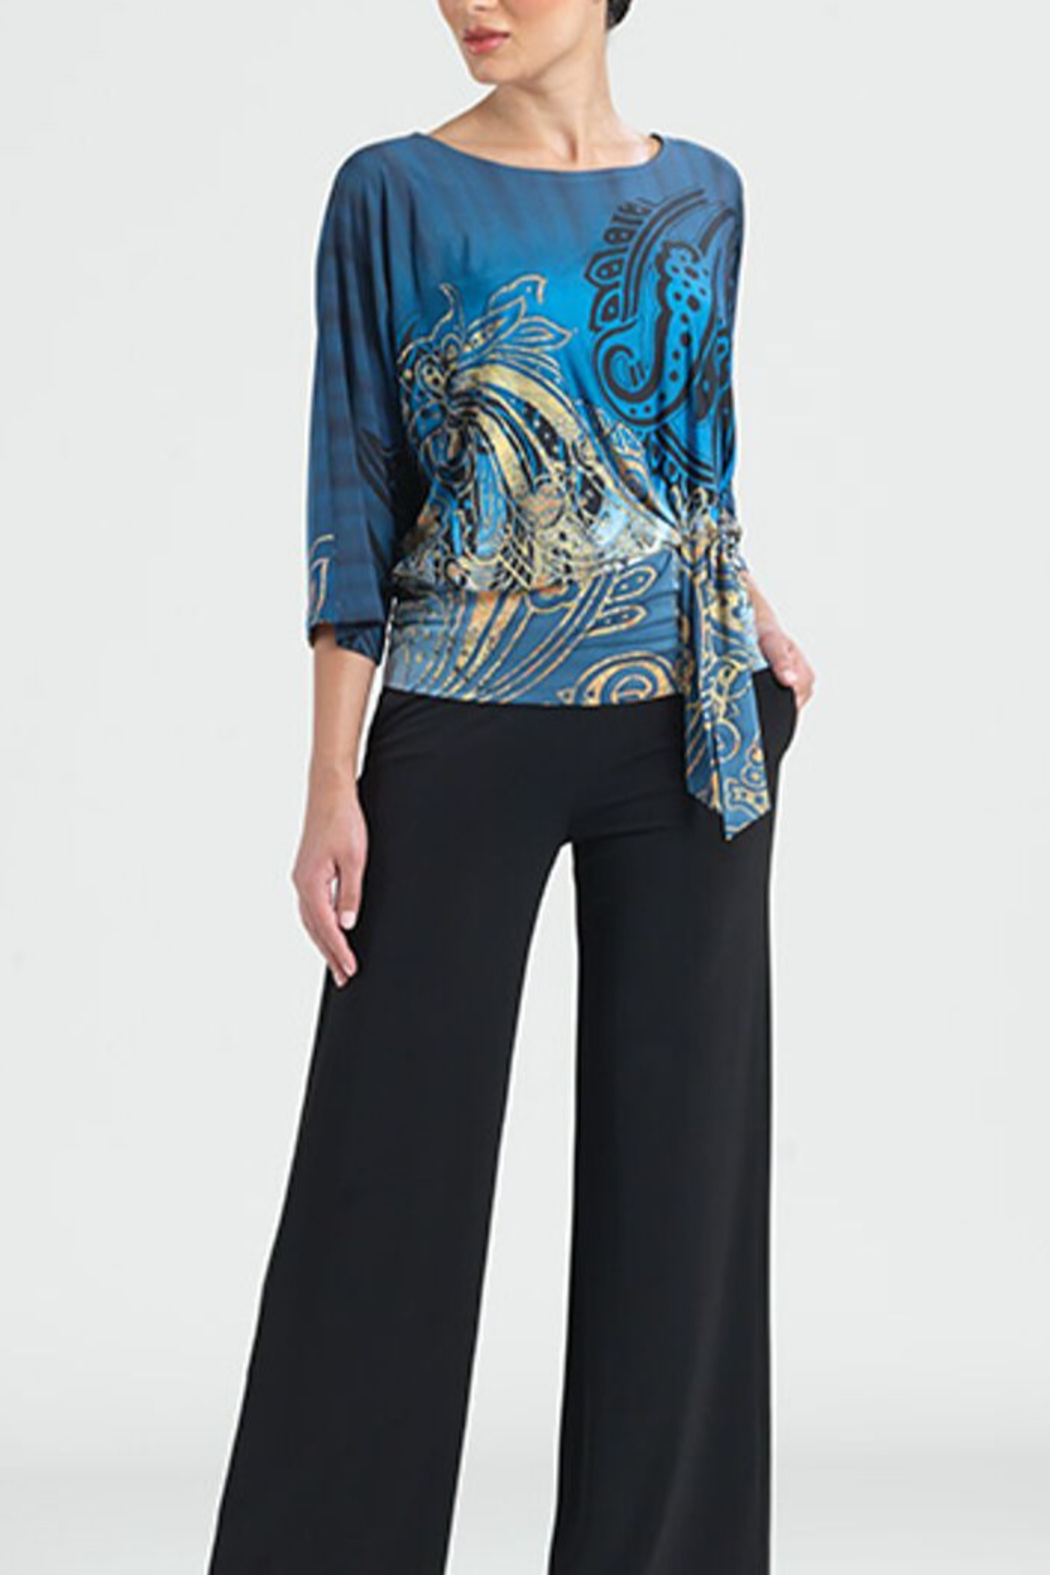 Clara Sunwoo Antique Paisley Print Side Tie Top - Front Cropped Image